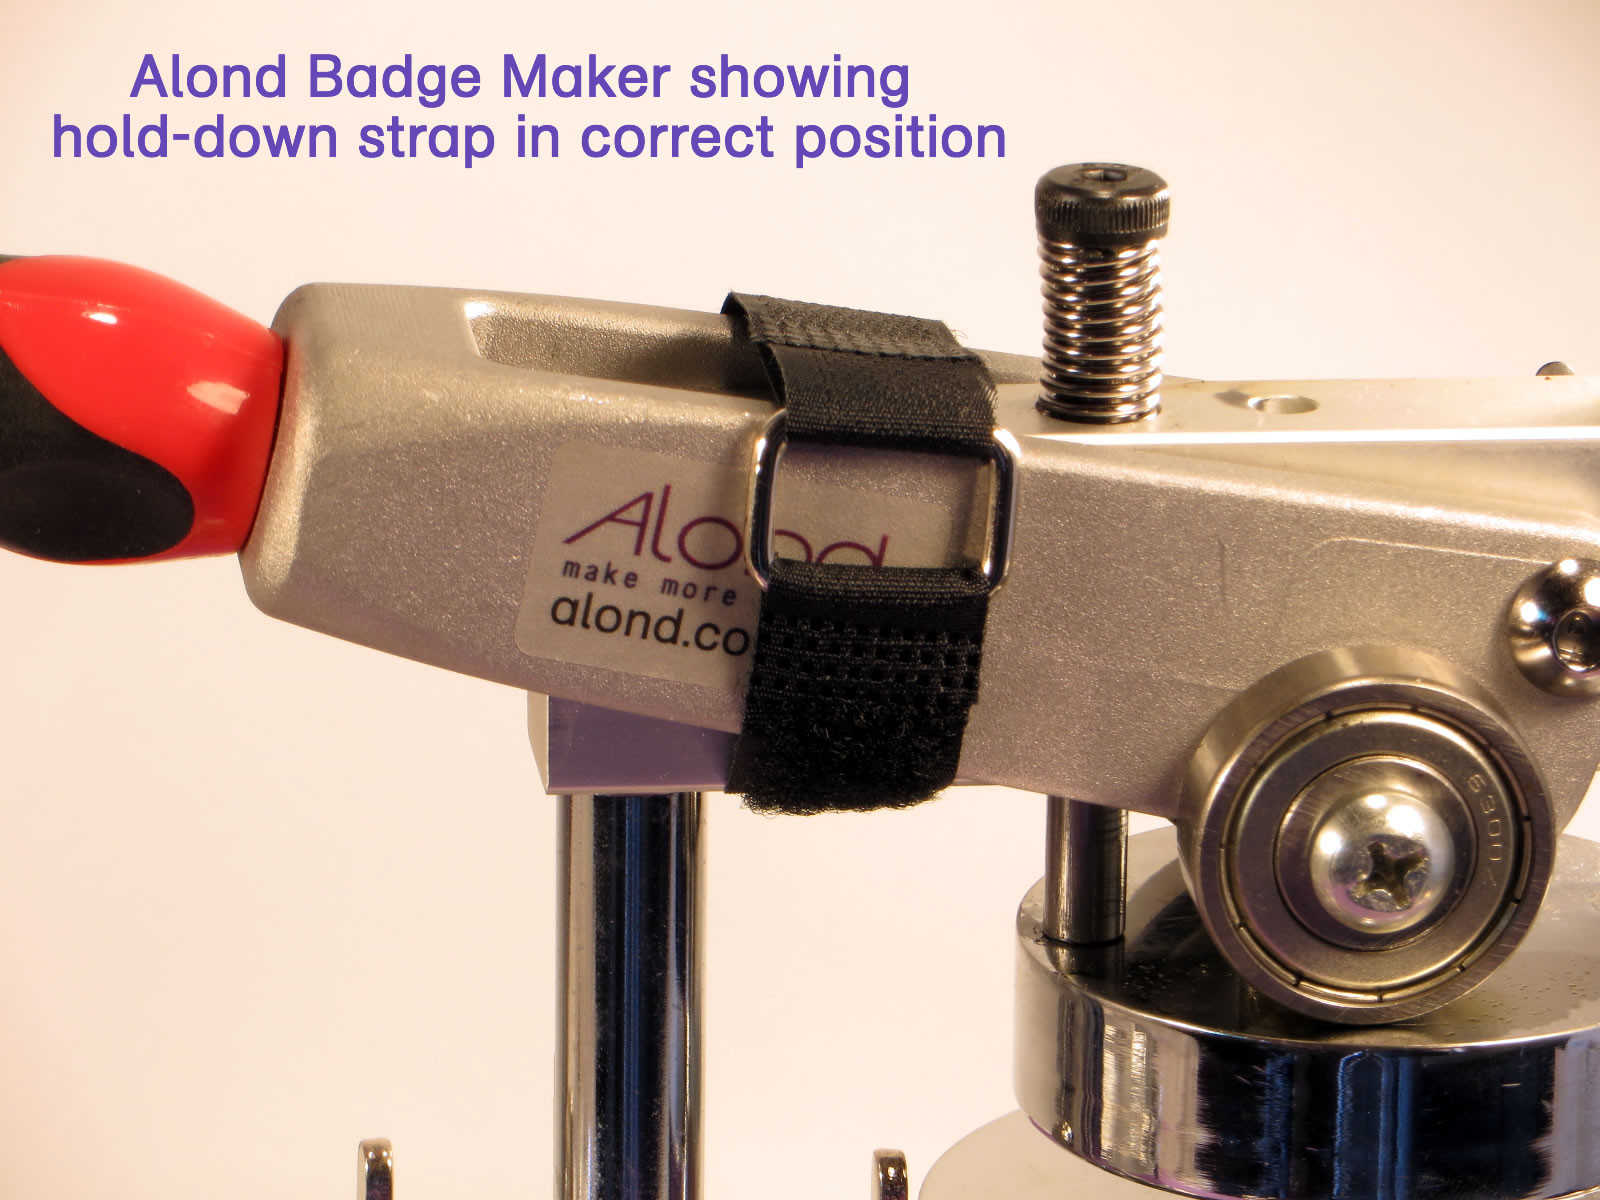 Hold down your badge maker handle for transport